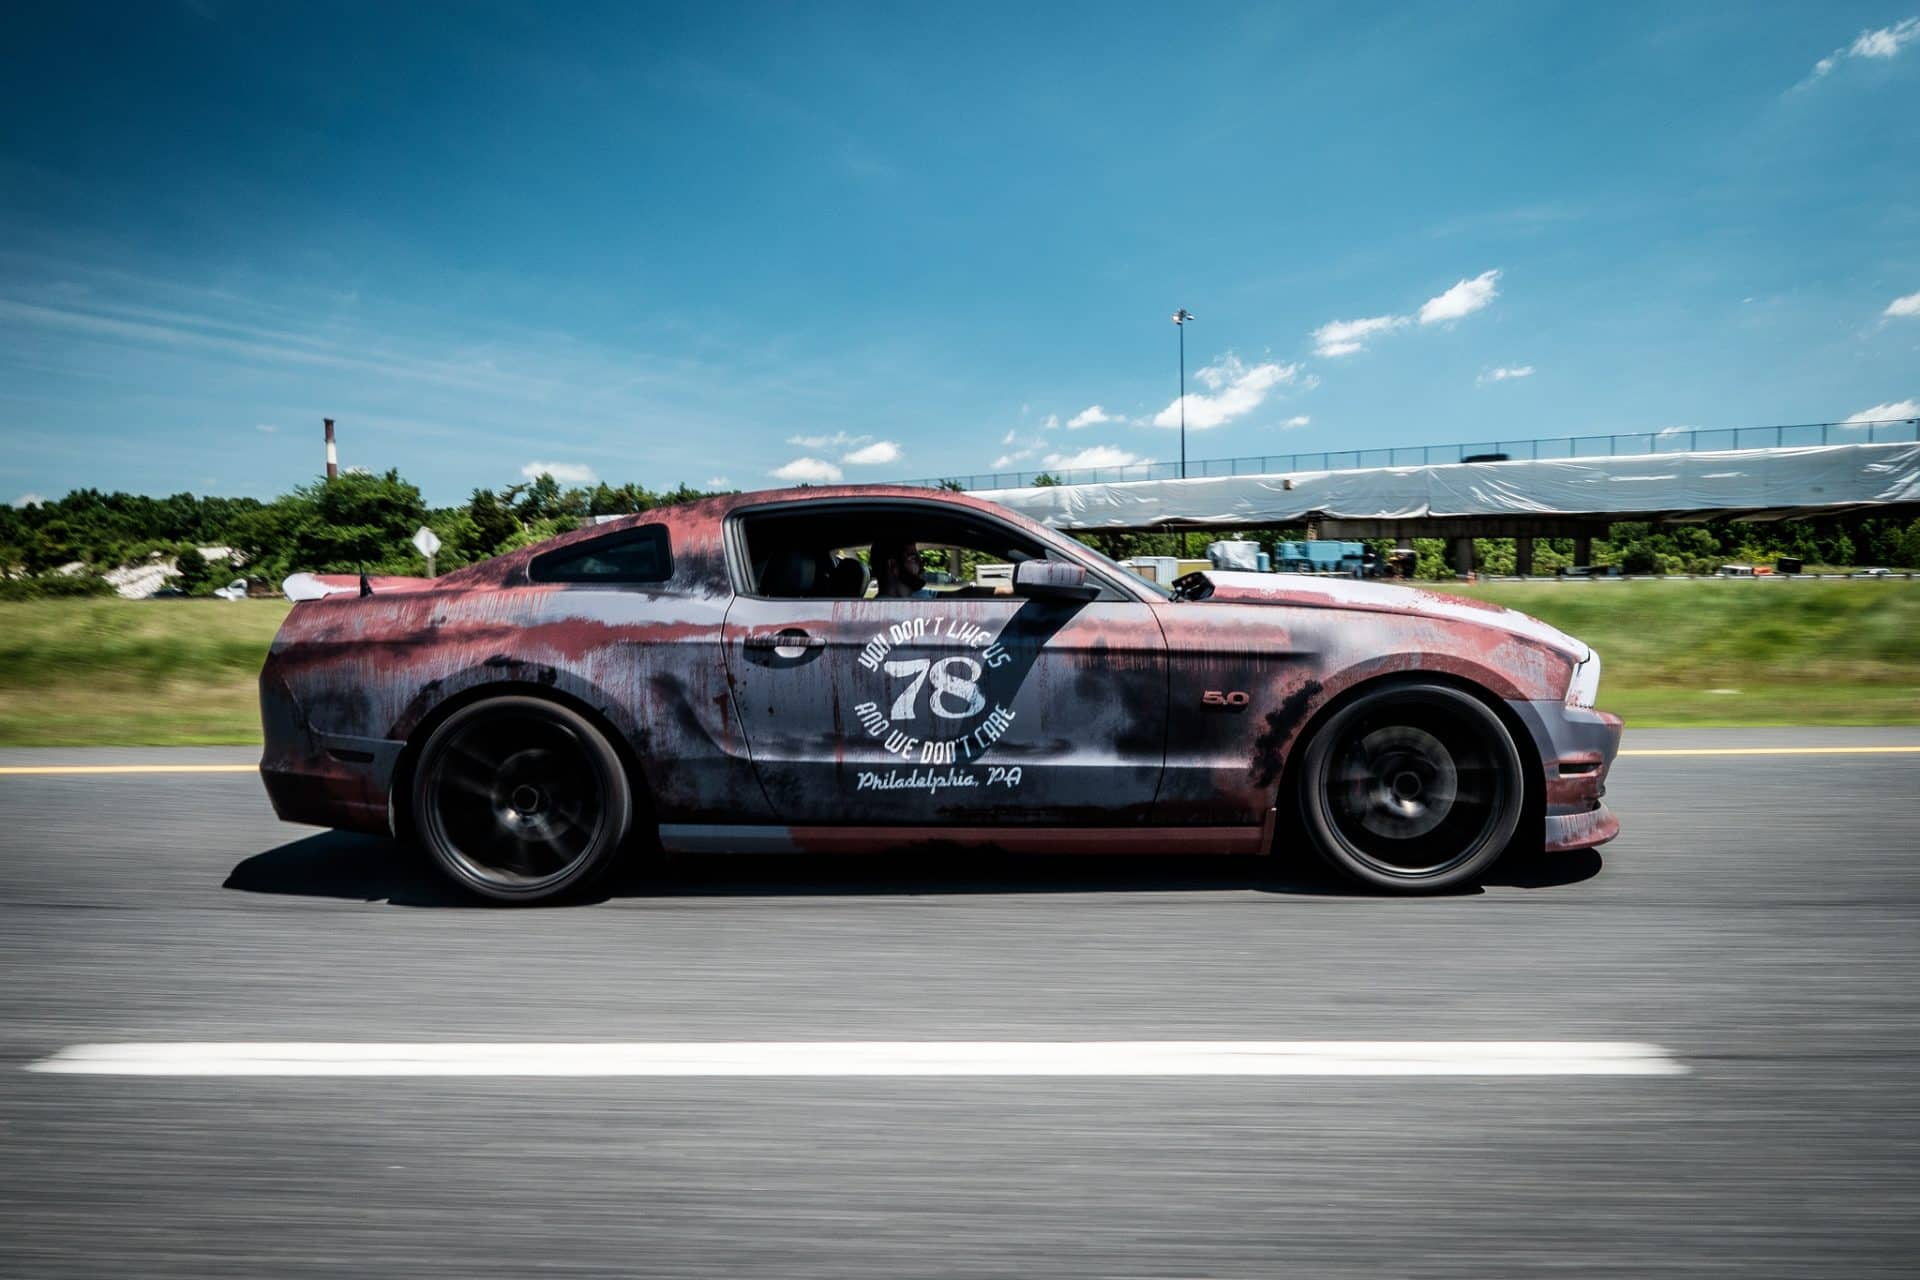 Ford Mustang 2016 >> Rust Wrap Design Ford Mustang | Skepple Inc